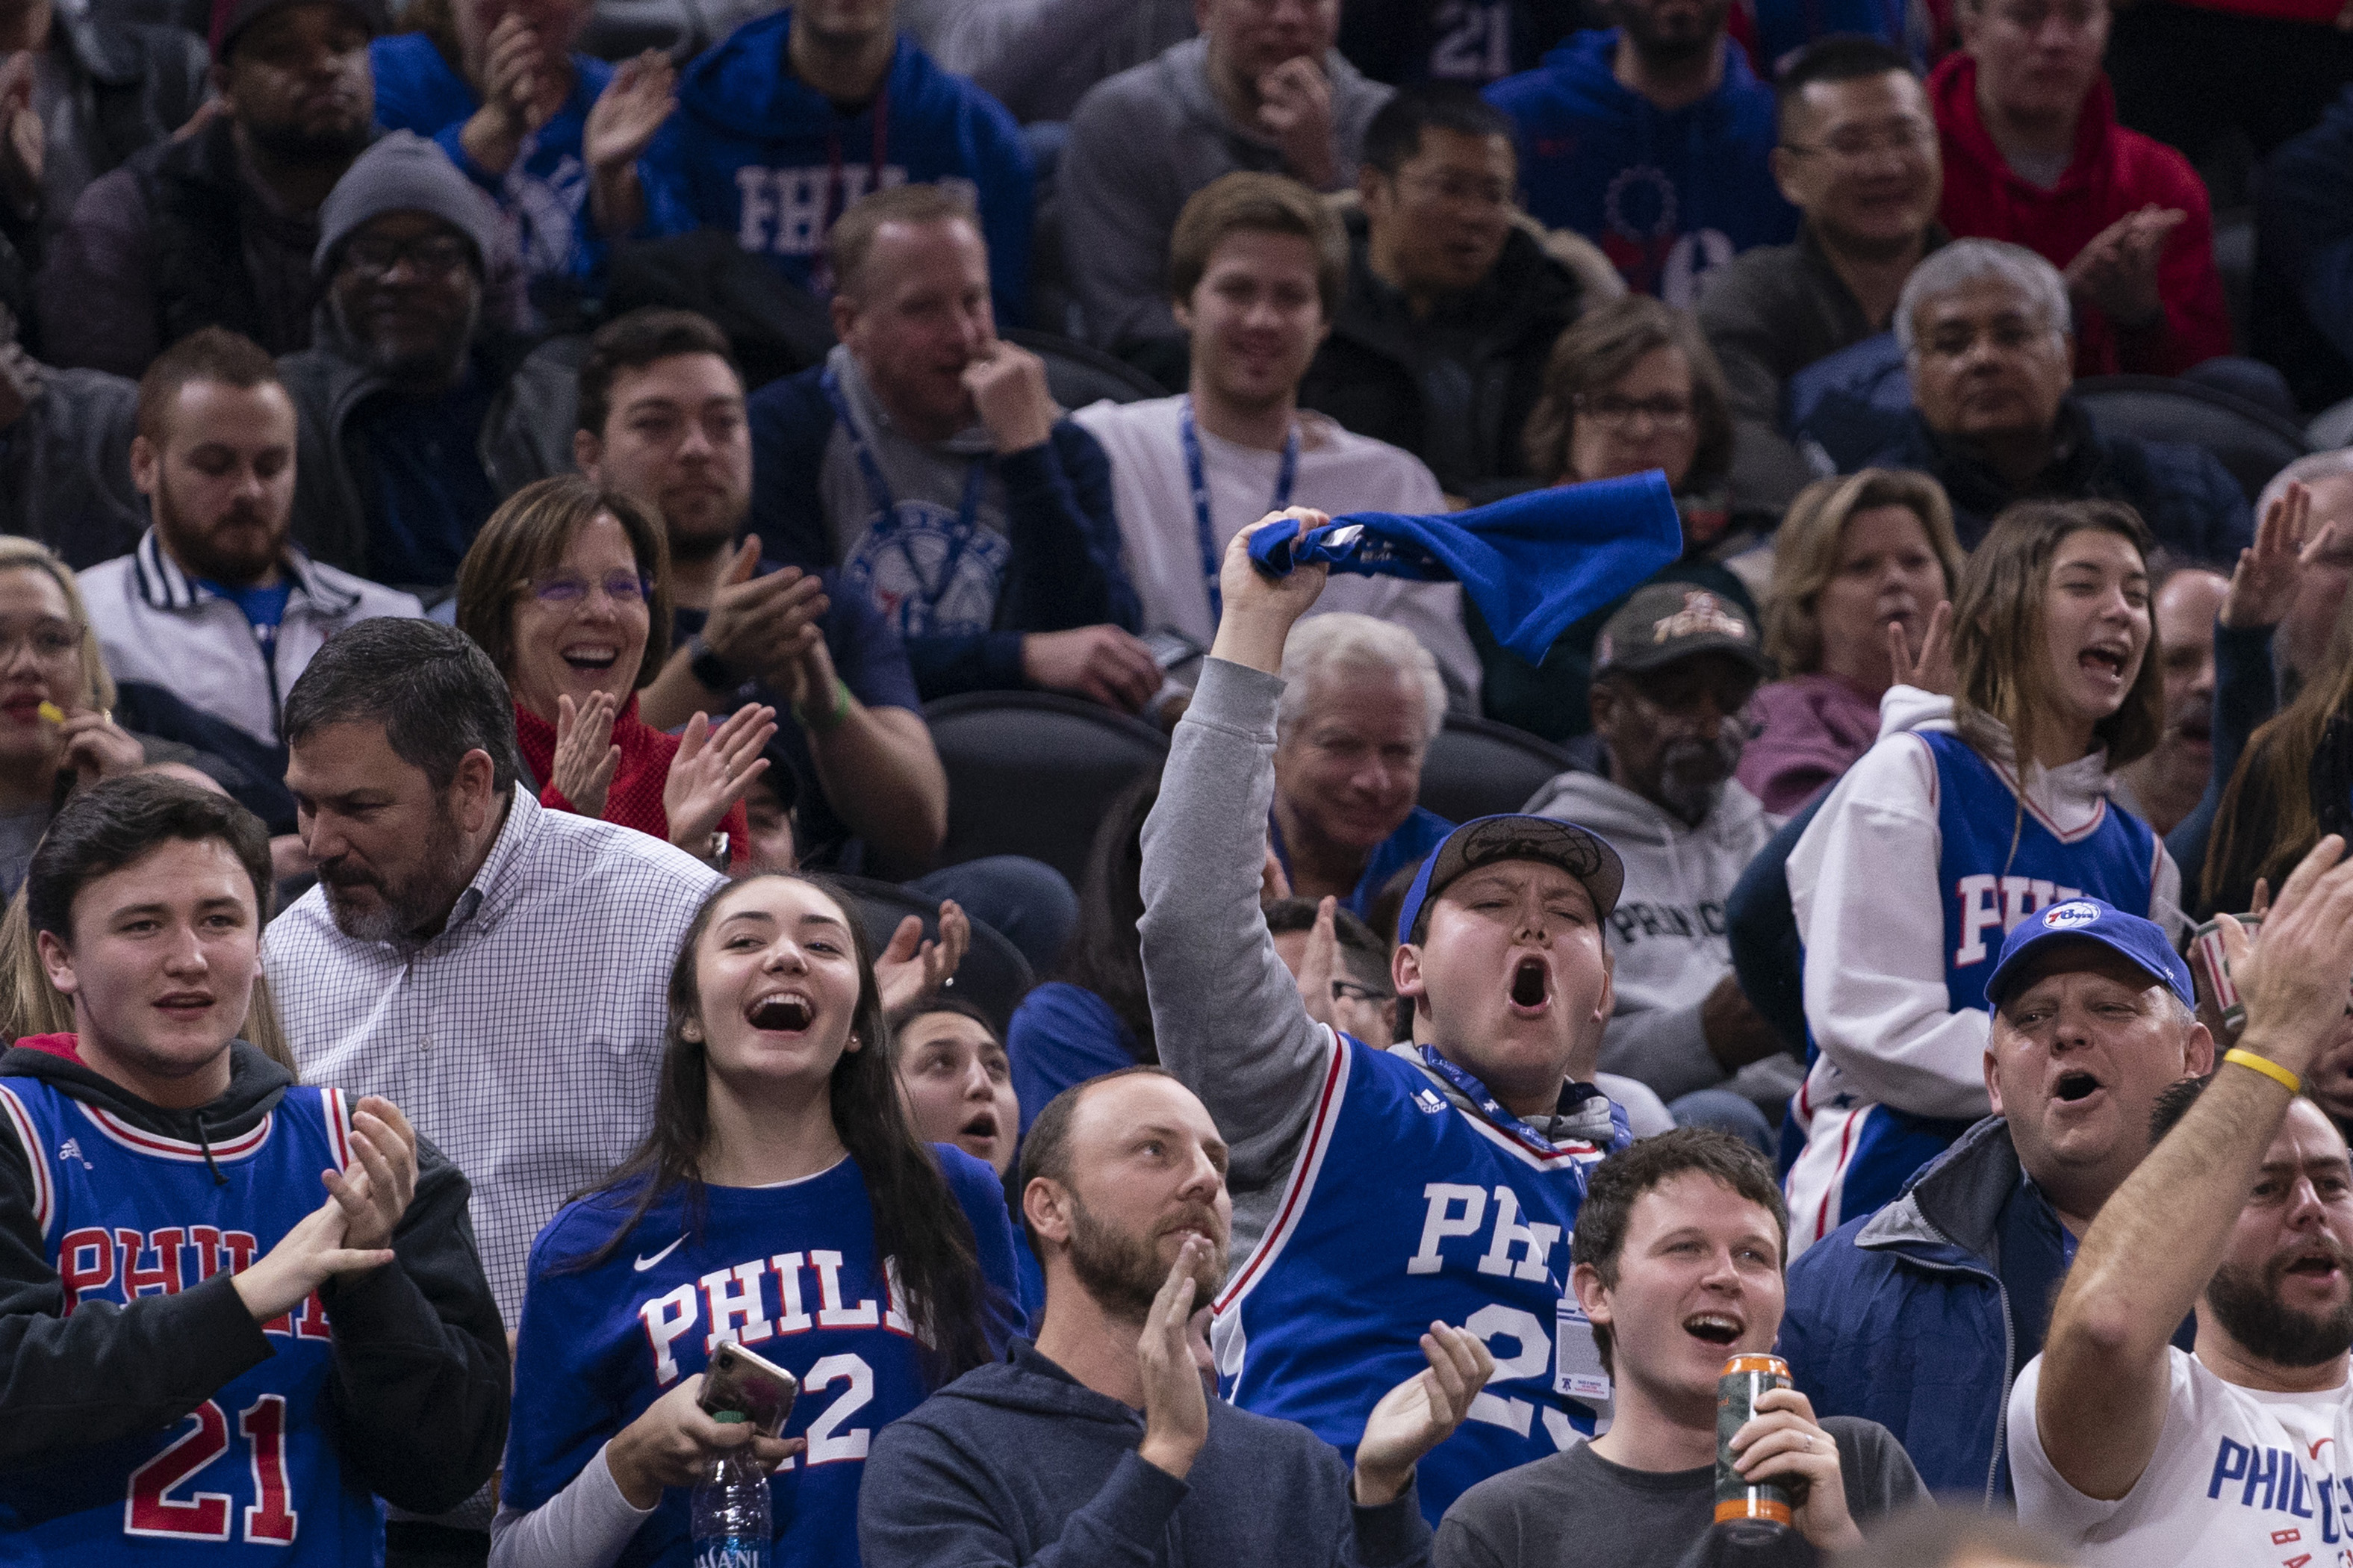 Philadelphia 76ers fans cheering on the team